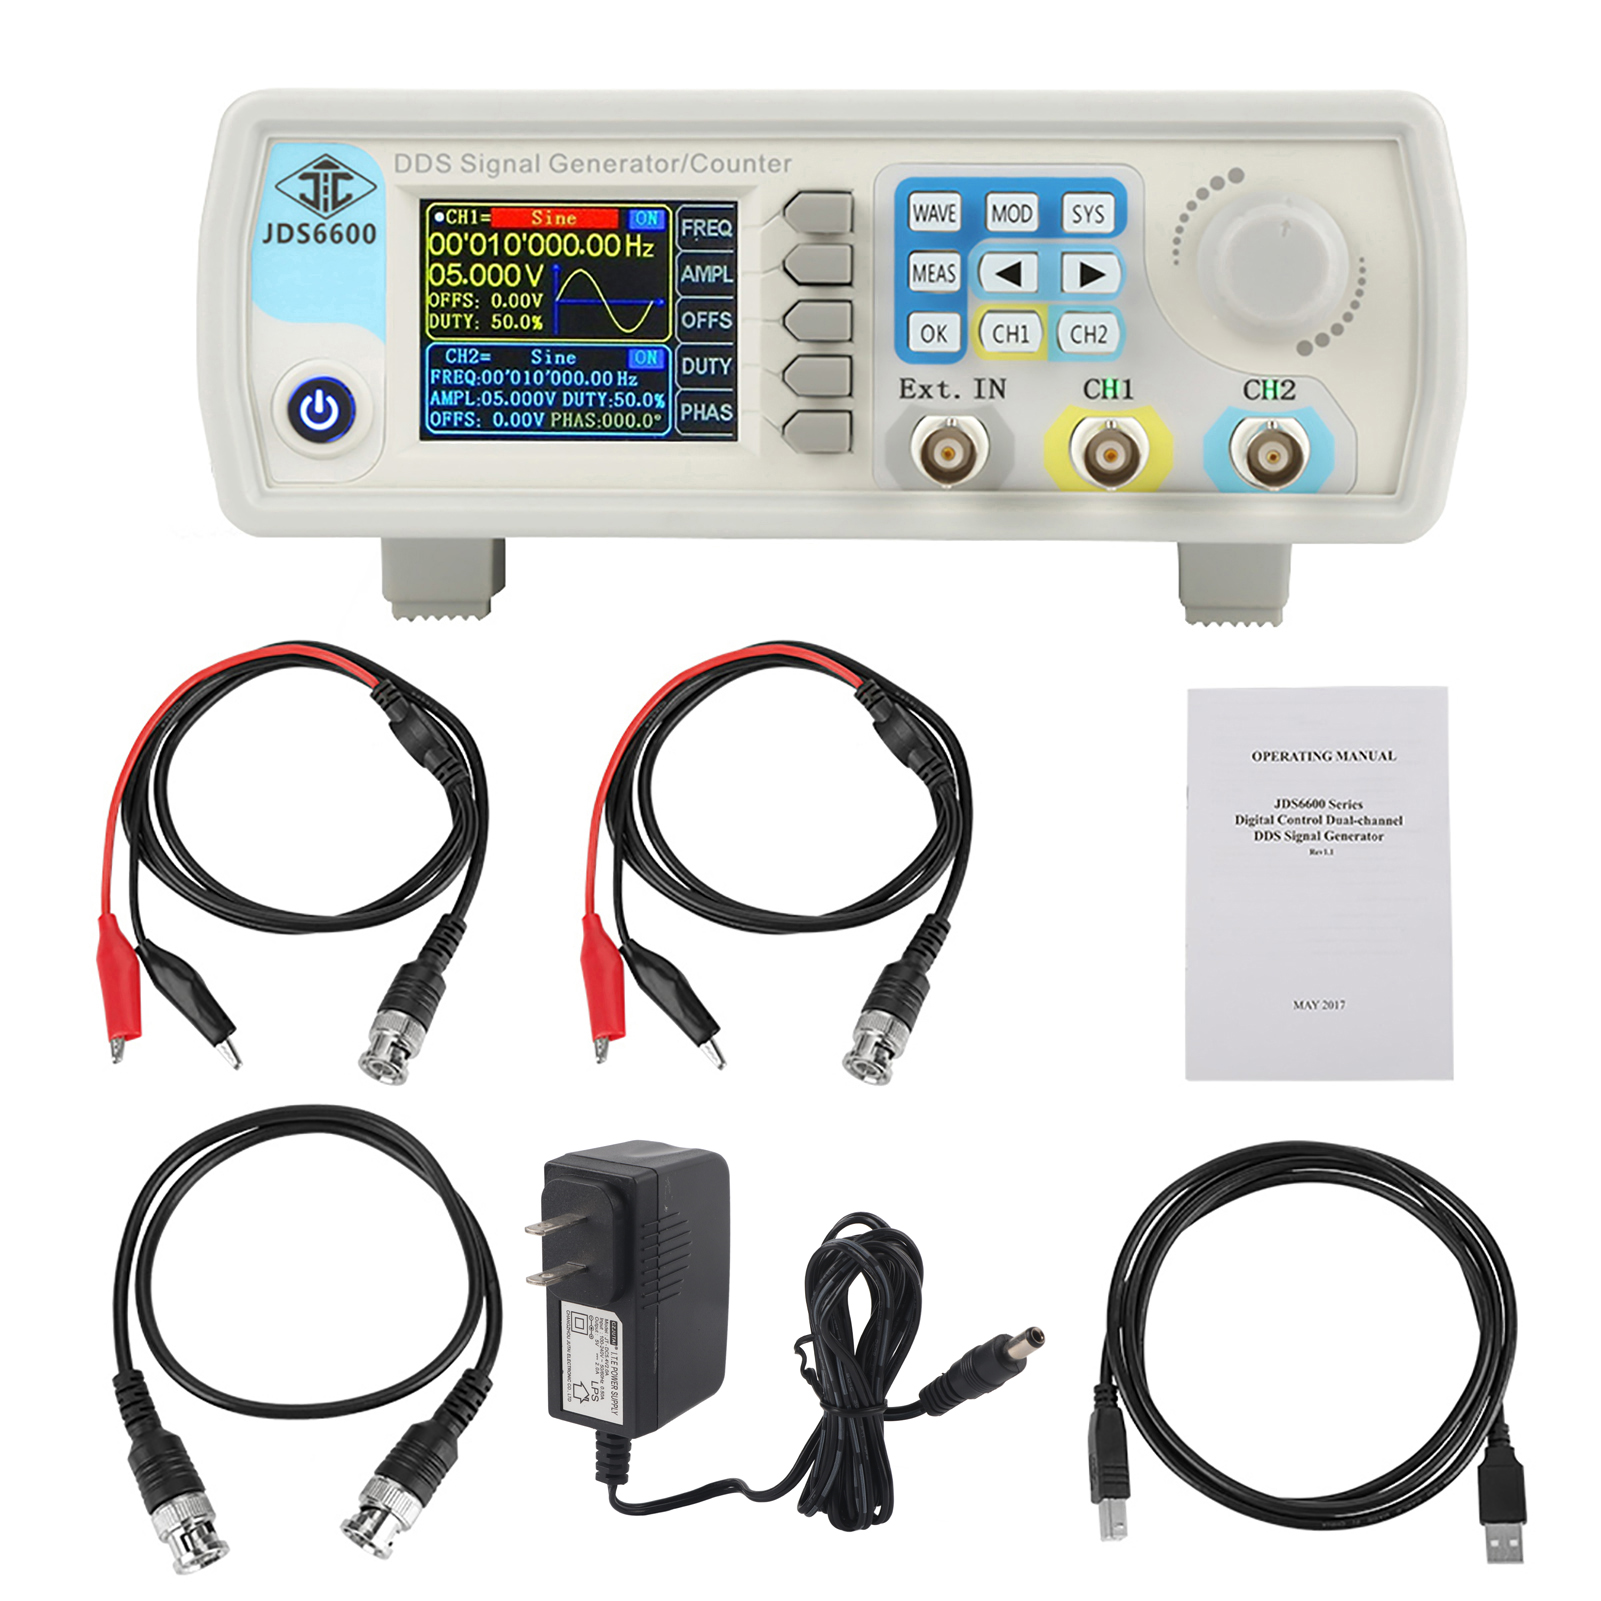 Jds6600 Digital Dds Signal Generator Counter Sine Frequency Ac100 Pulse Control By Ic